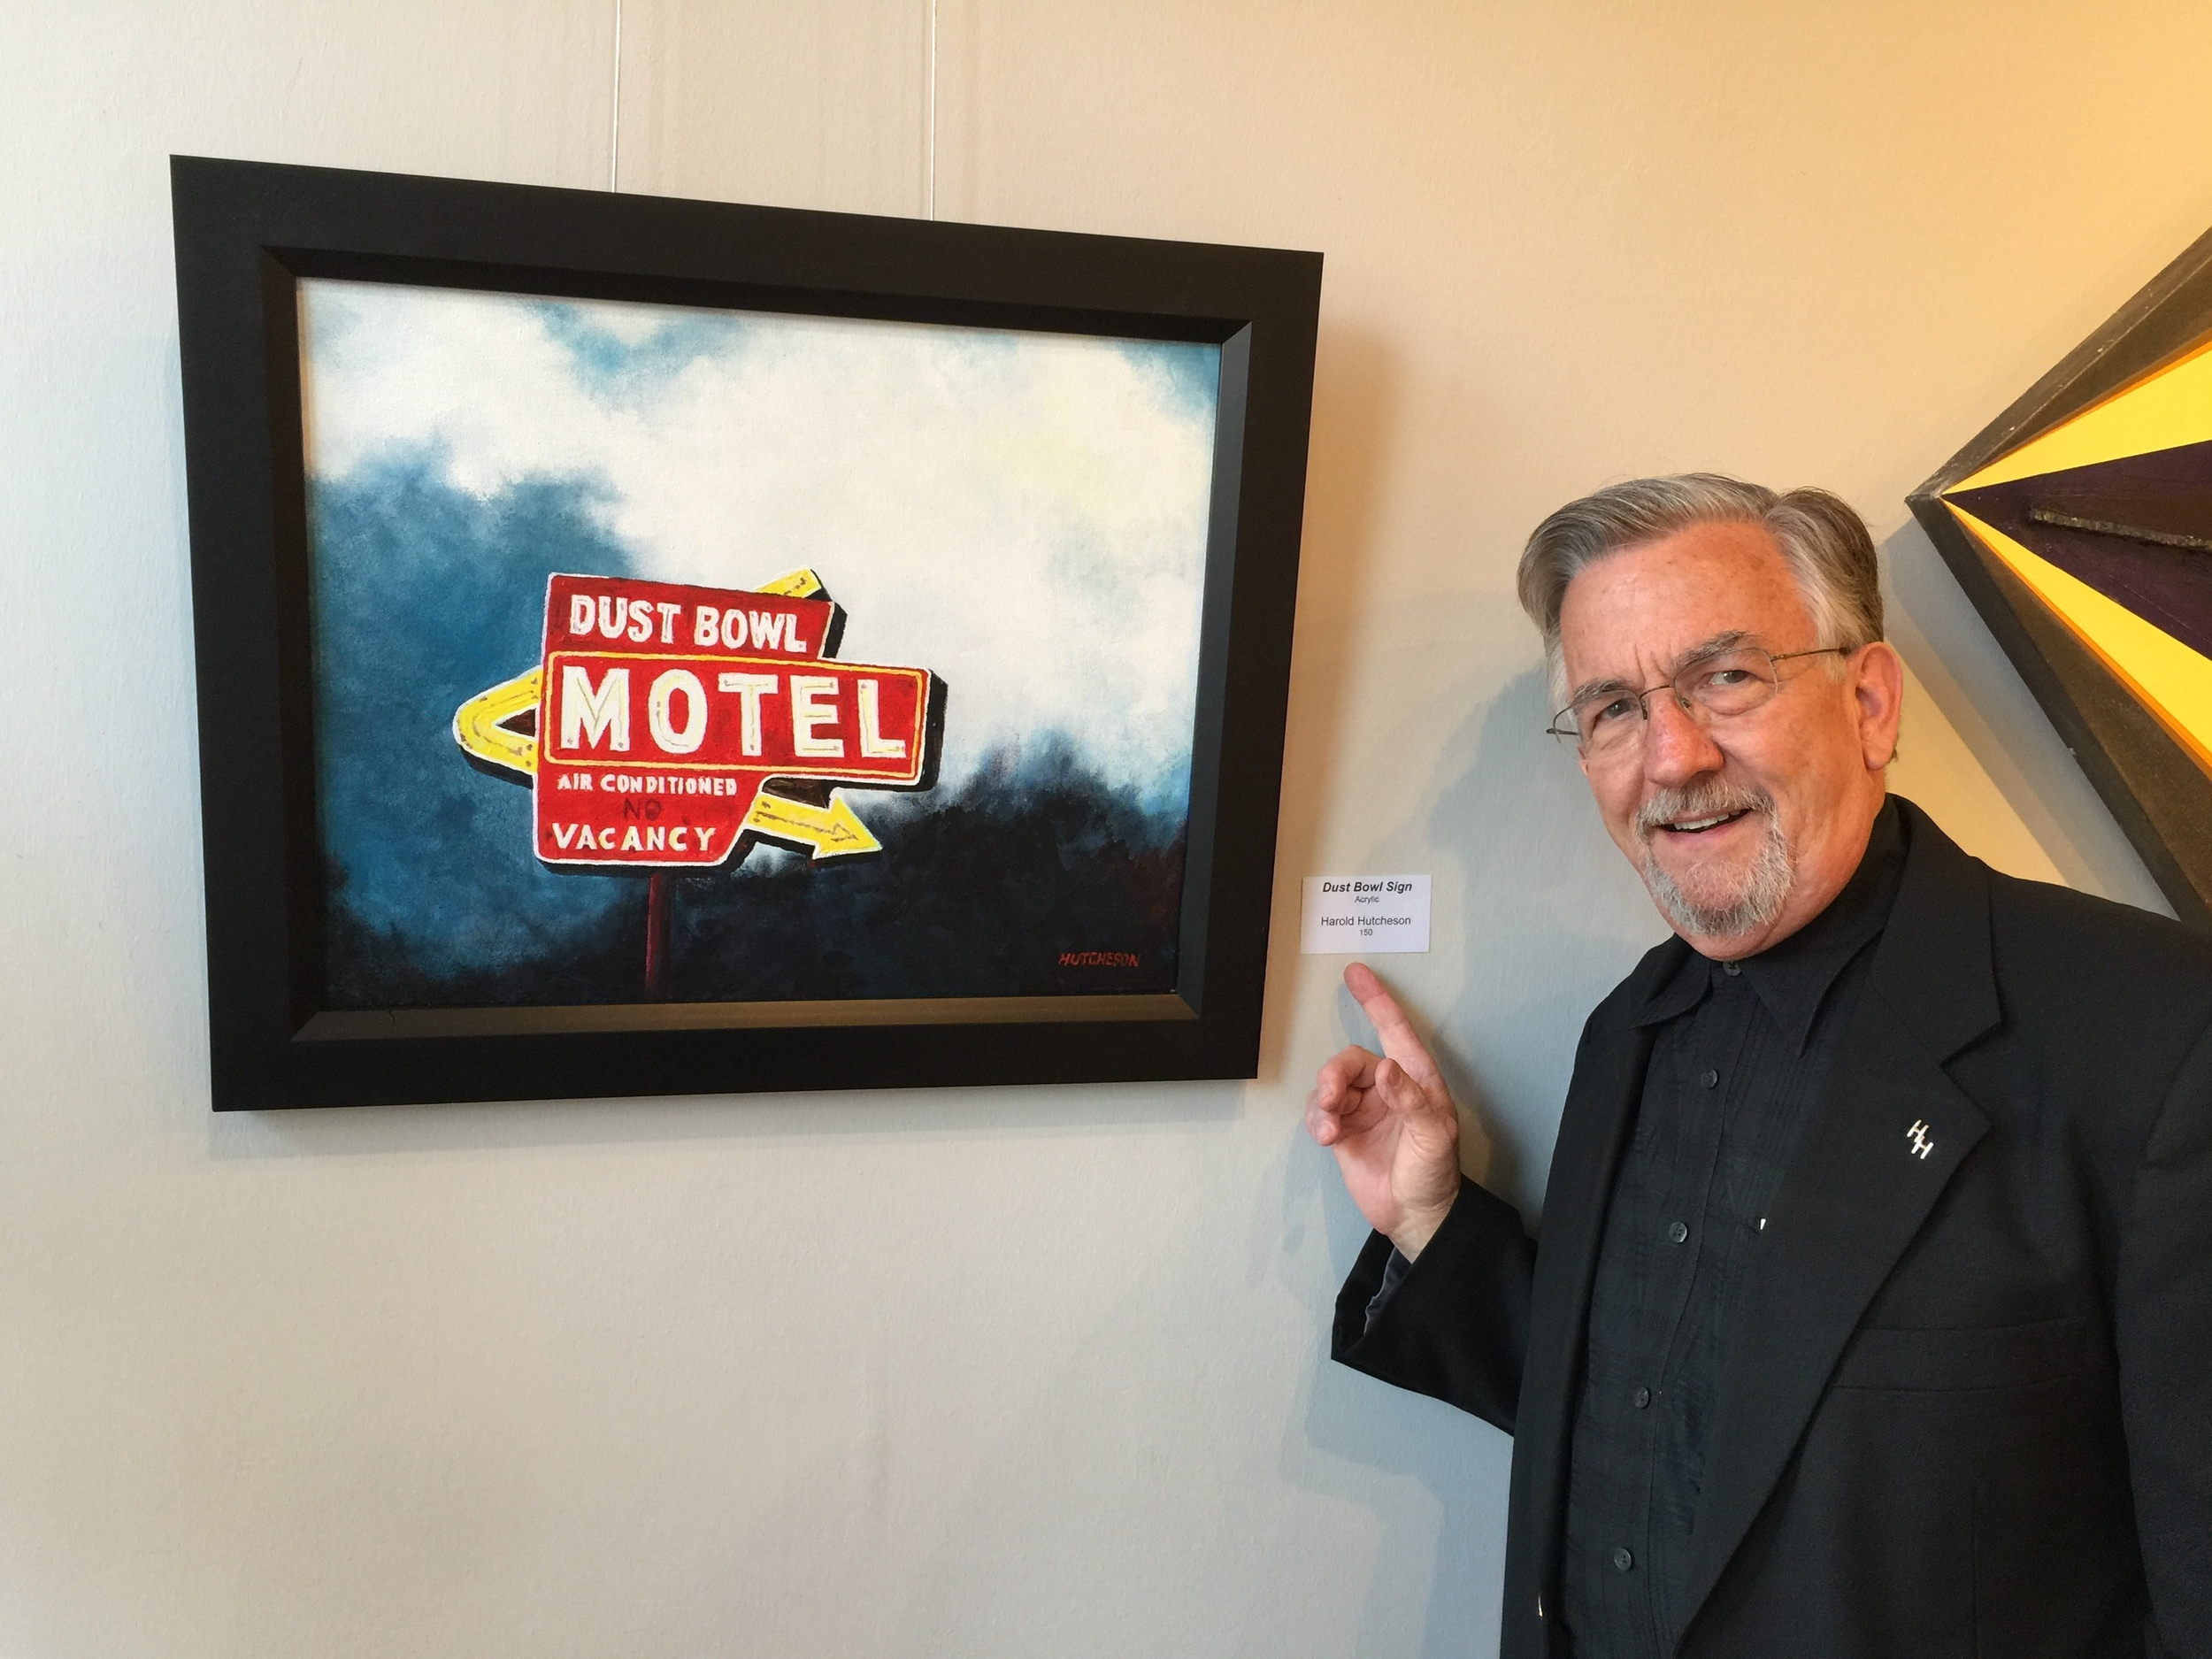 Harold Hutcheson with his painting at the DUST BOWL MOTEL Art Show sponsored by the Conroe Art League.